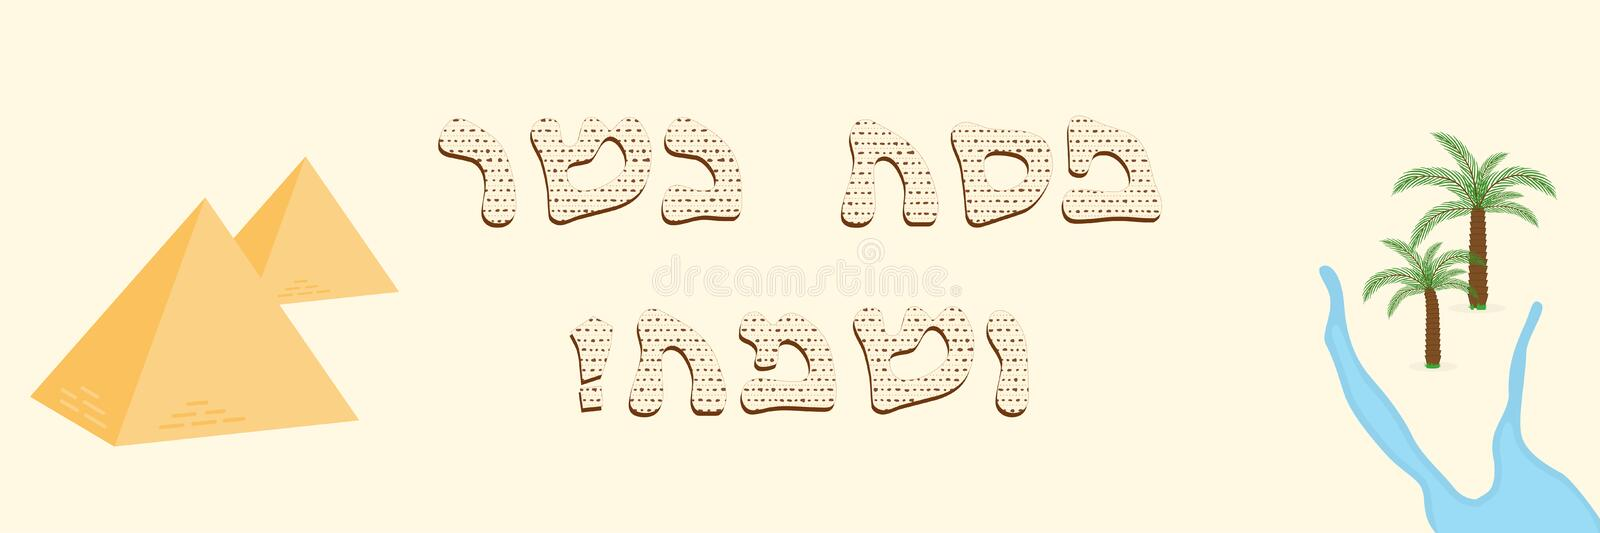 Jewish holiday of Passover. Banner with pyramids, Exodus from Egypt, Pesach unleavened bread, matzah lettering, greeting inscription in hebrew - Happy and royalty free illustration